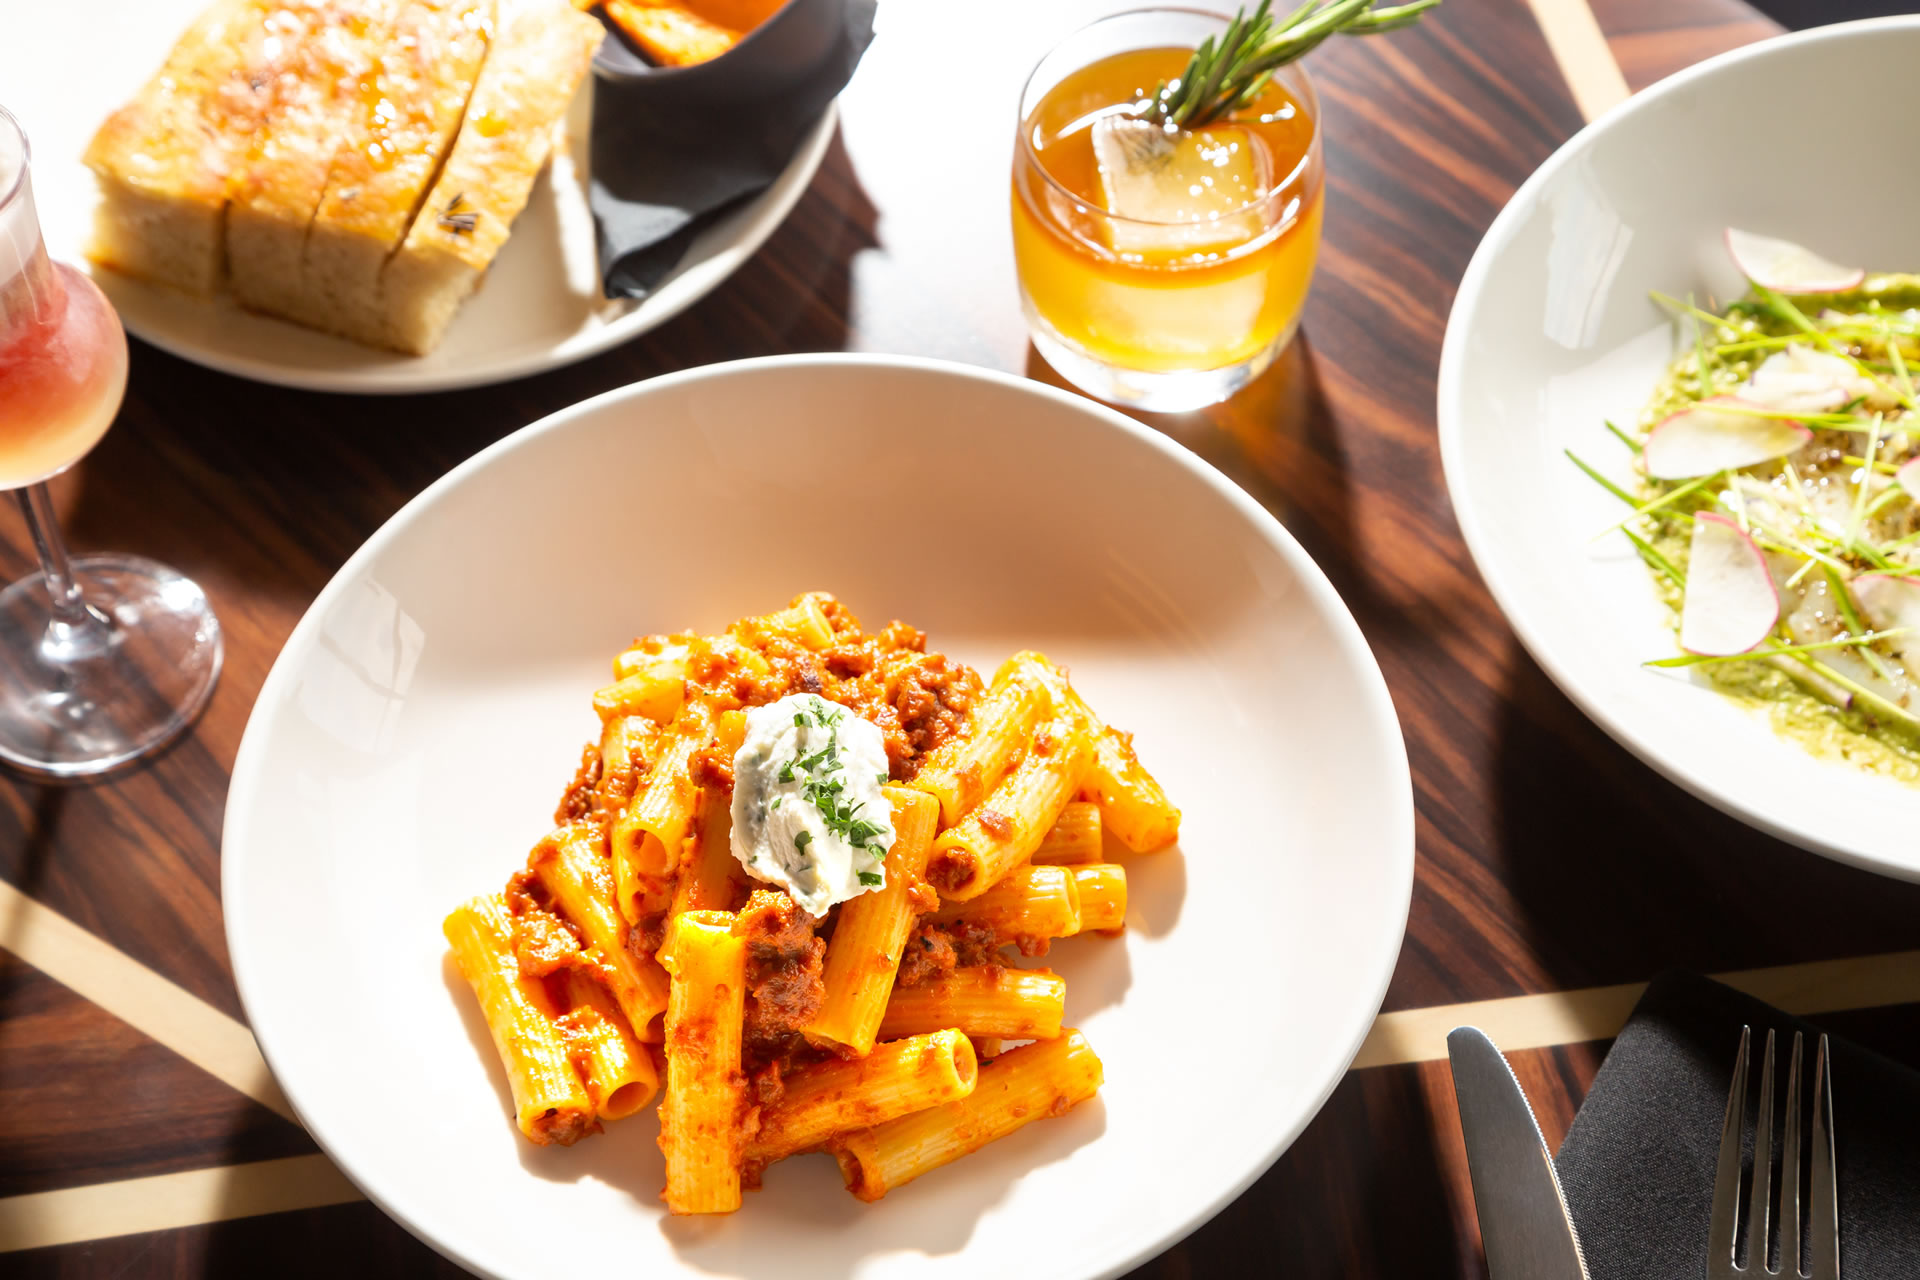 A plate of bolognese among other food on a table at Copper & Salt Northwest Kitchen